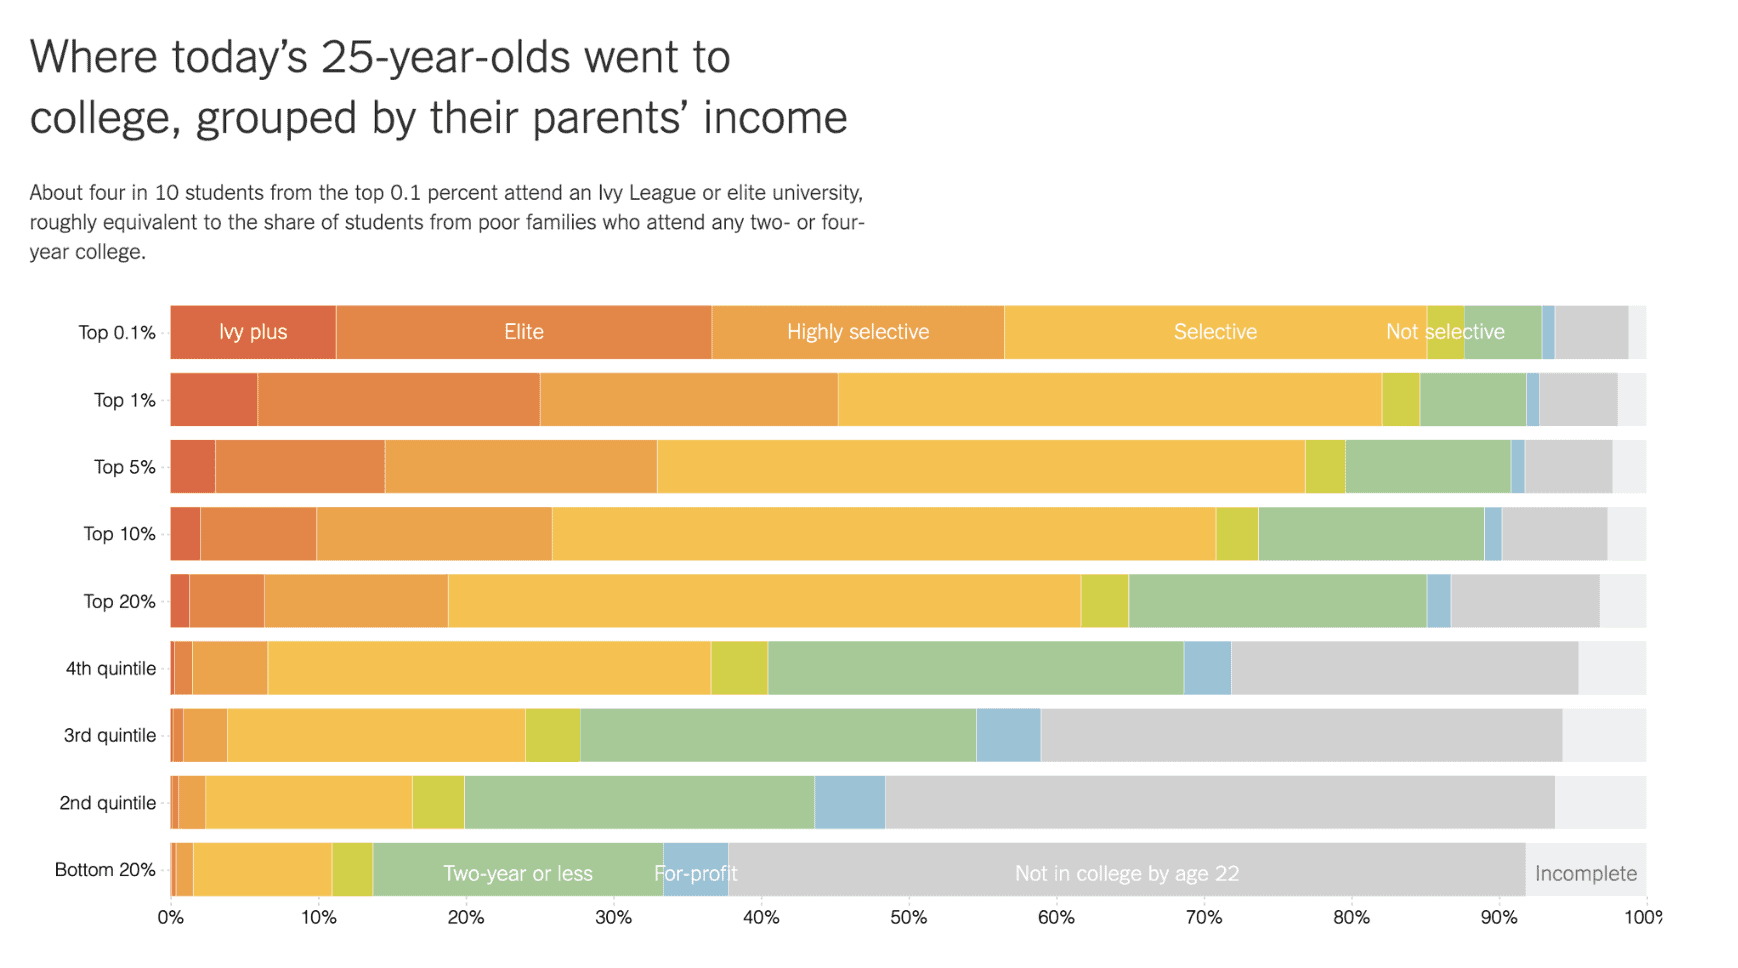 Chart: Where today's 25-year-olds went to college, grouped by their parents' income